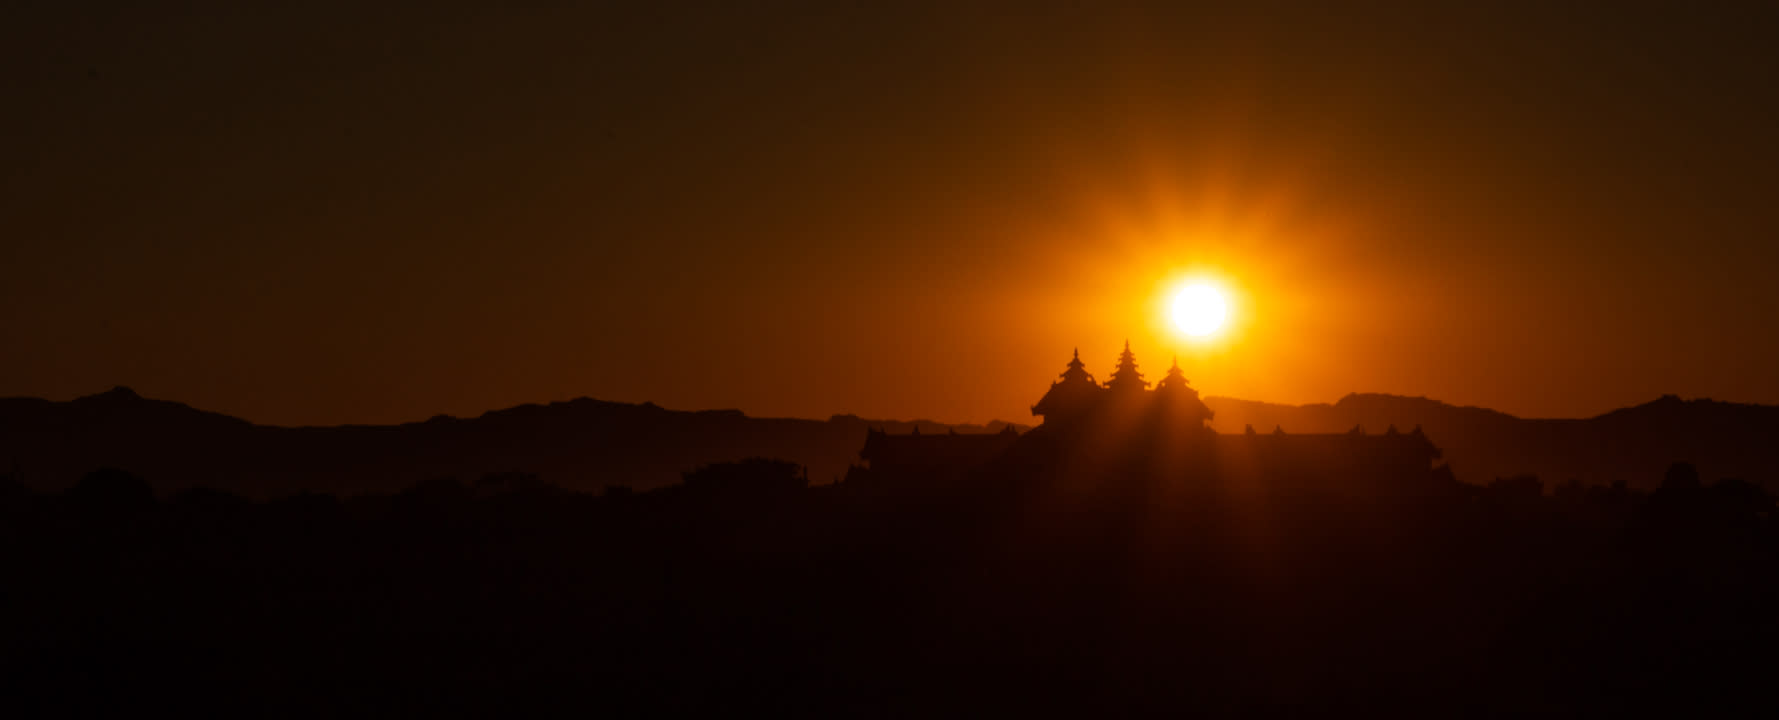 Silhouette of a palace in Bagan during sunset